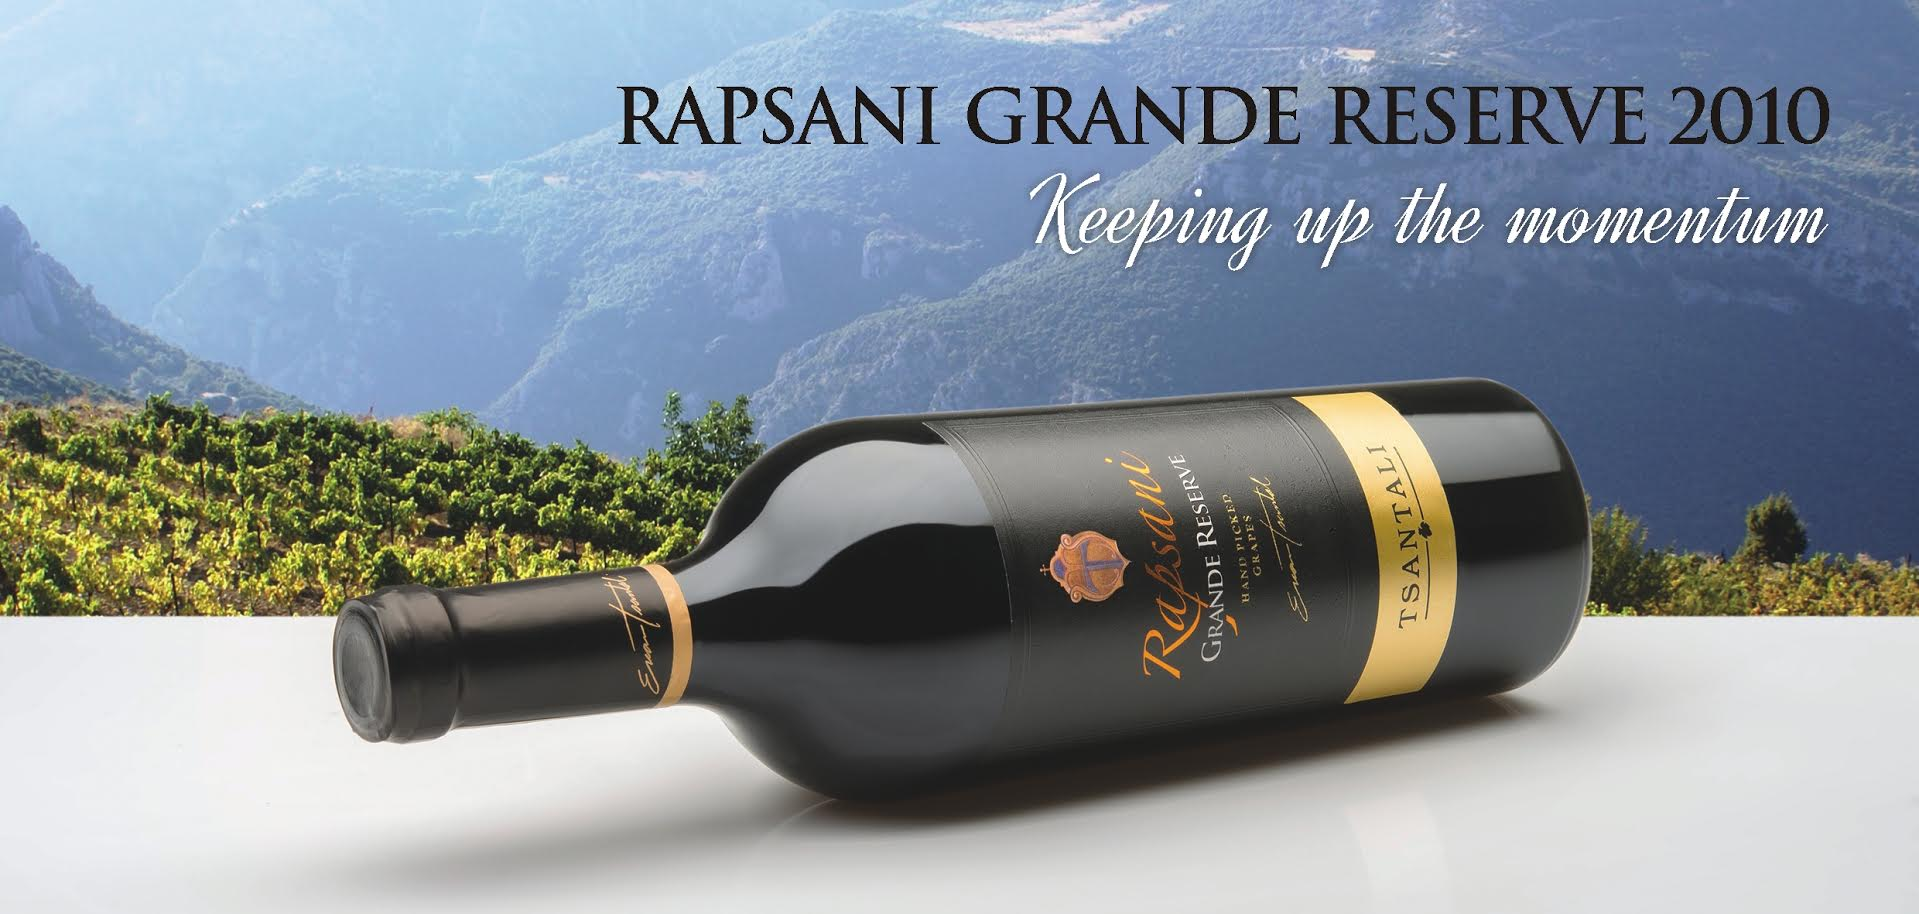 rapsani-grande-reserve-2010-keeping-up-the-momentum-blog